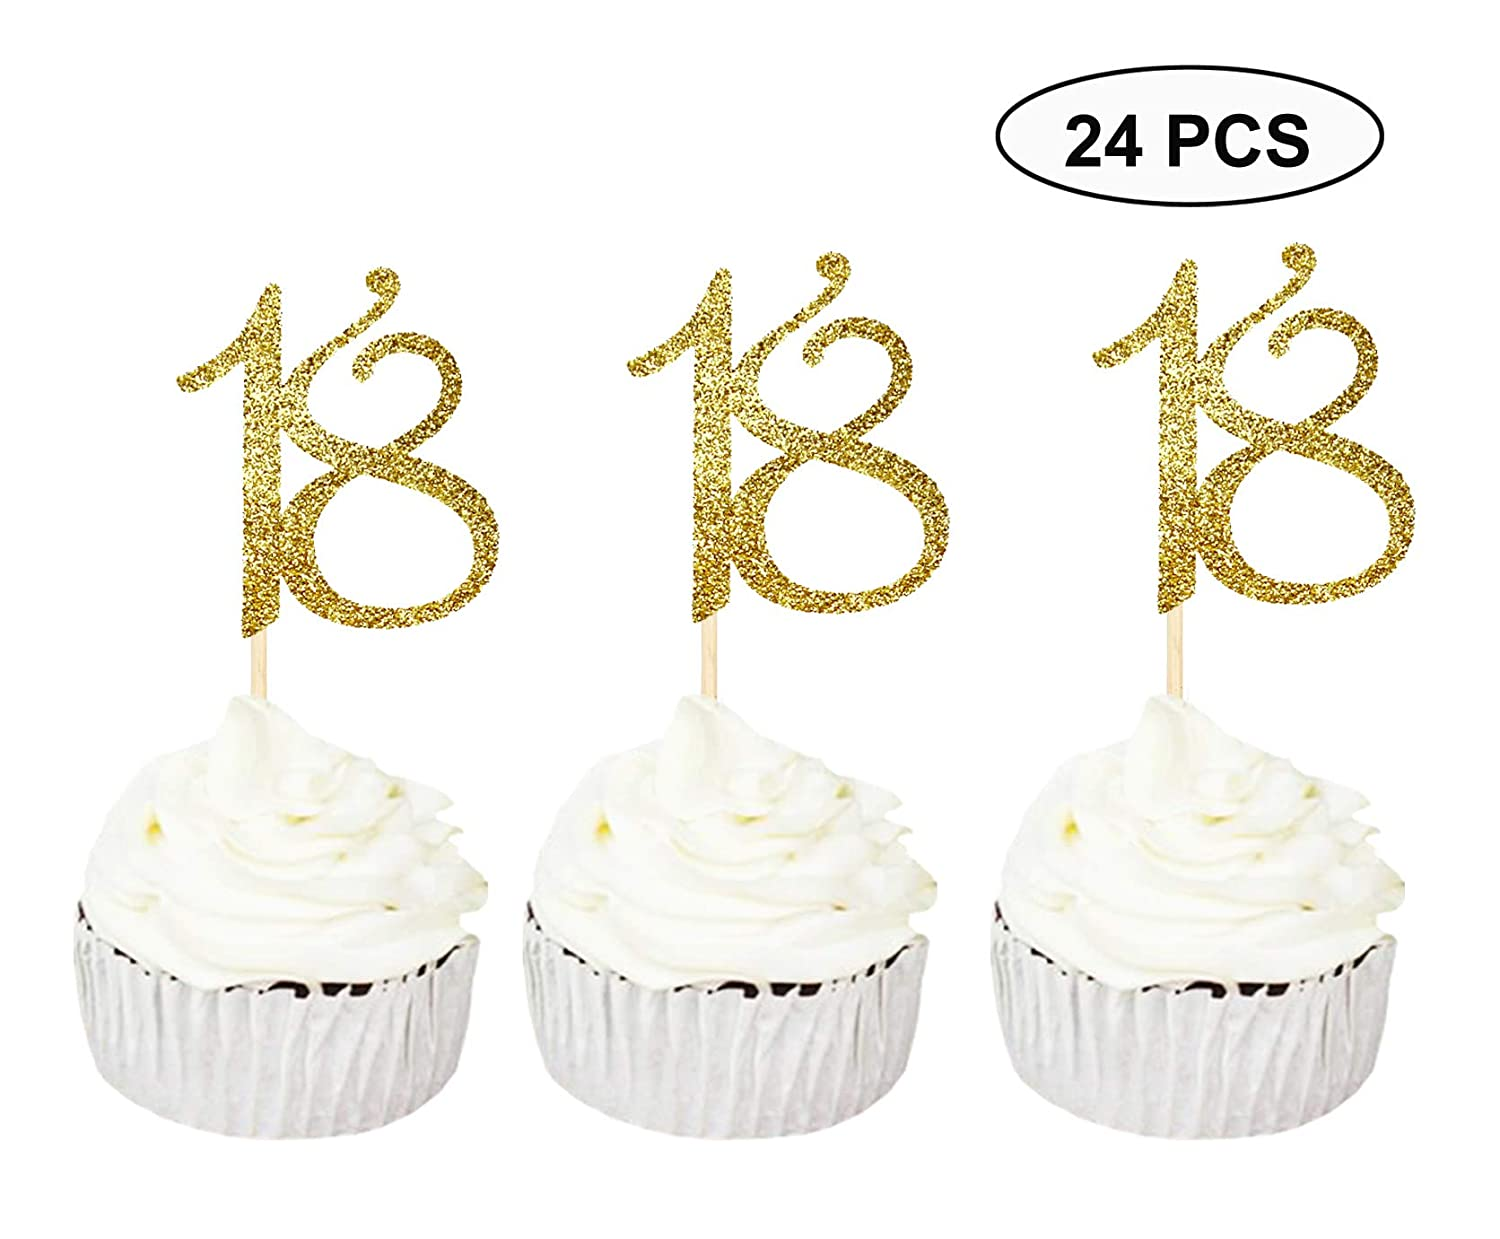 24 PCS 18th Cupcake Toppers - Anniversary or Birthday Cupcake Picks Party Decoration Supplies | Black 18th